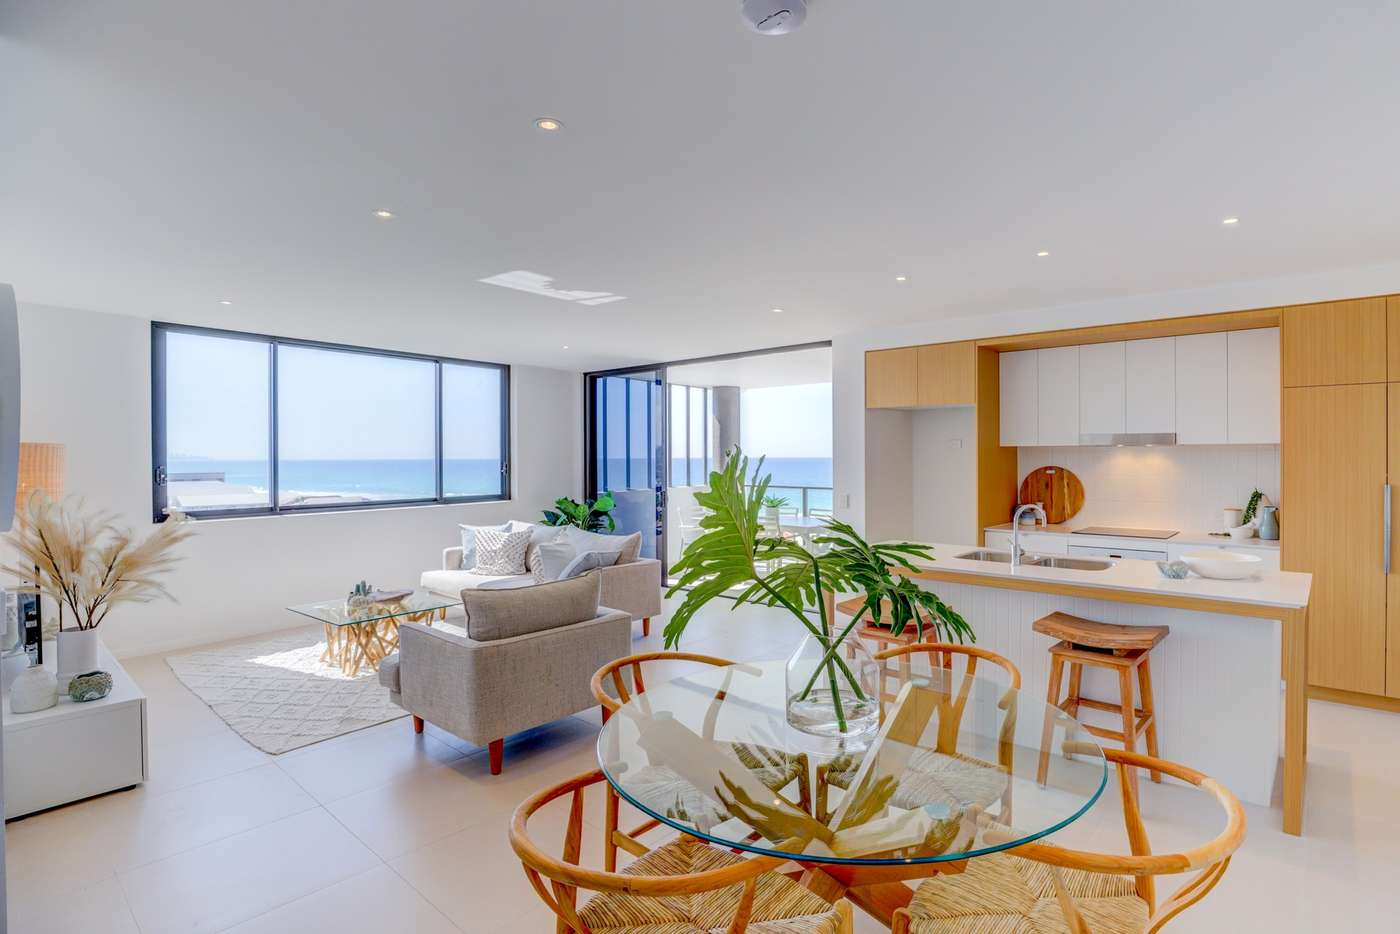 Main view of Homely apartment listing, 505/60 Jefferson Lane, Palm Beach QLD 4221